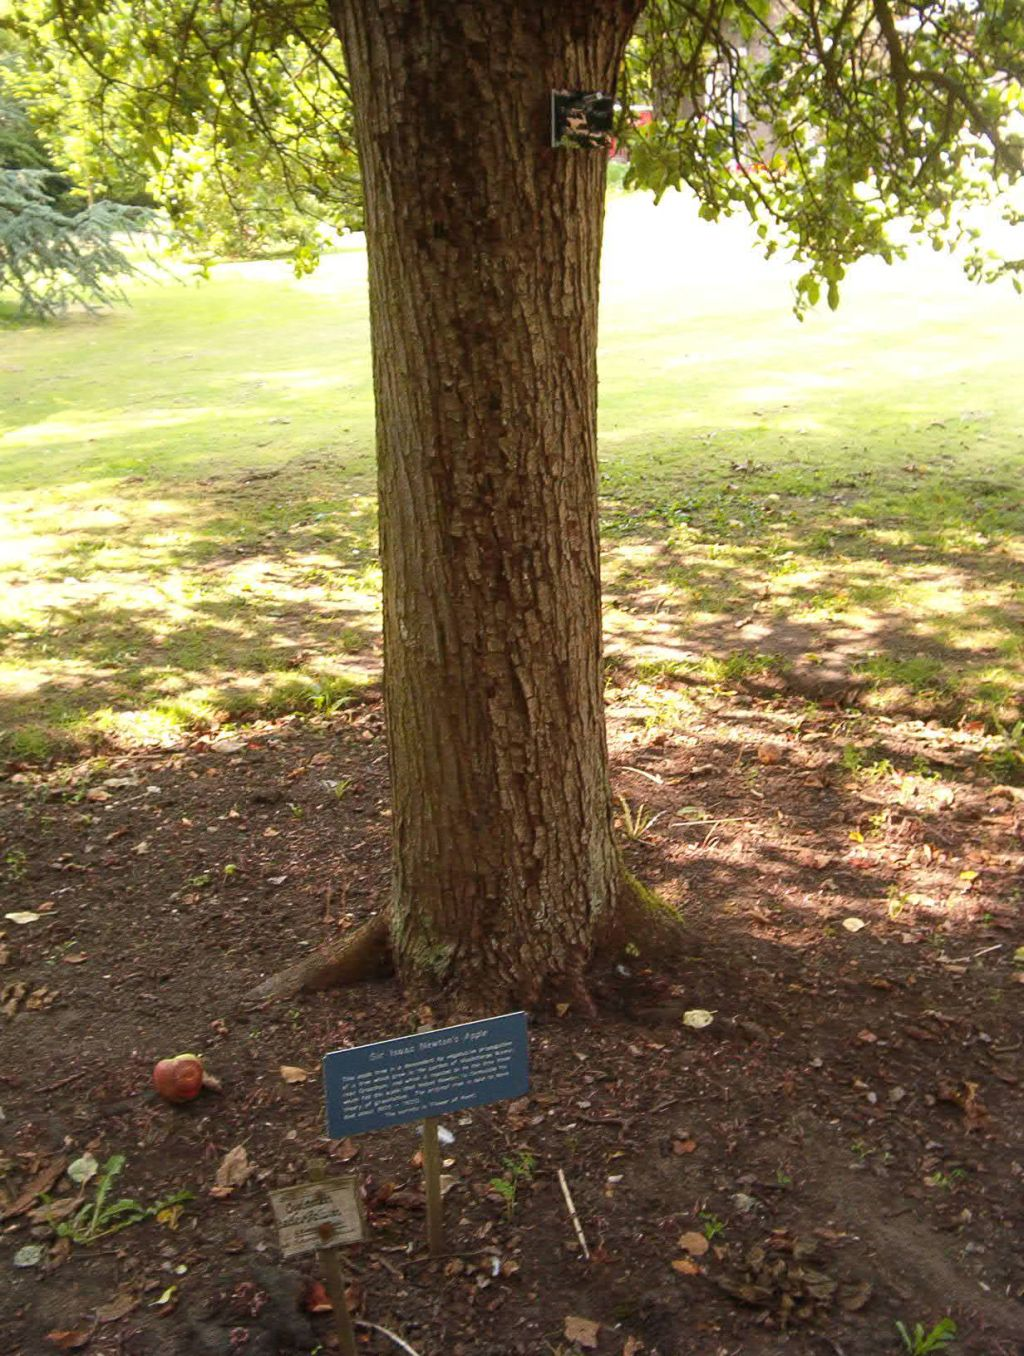 issac newton biography writework an apple tree that is reportedly a descendent of the tree that inspired isaac newton to